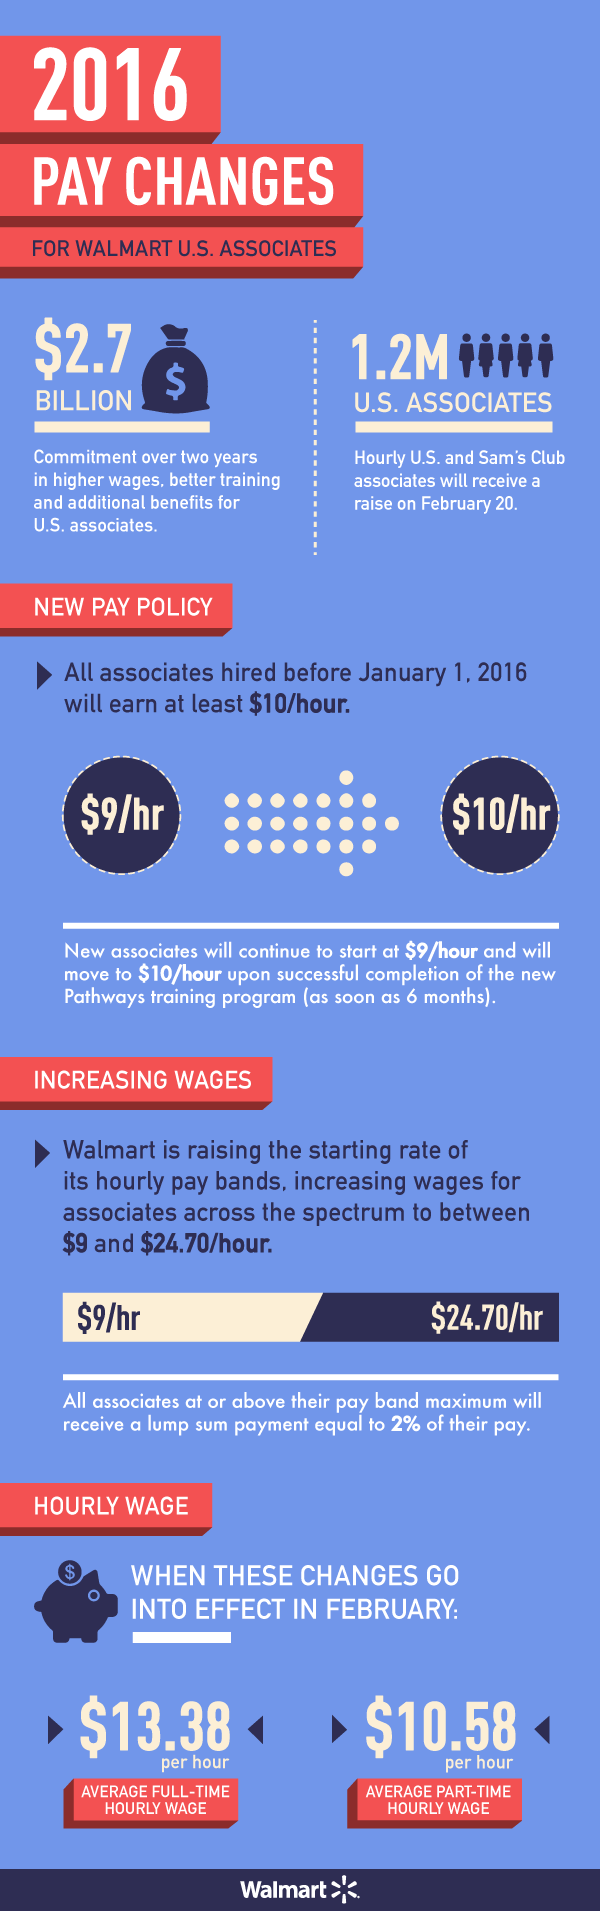 2016 Pay Changes for Walmart Associates